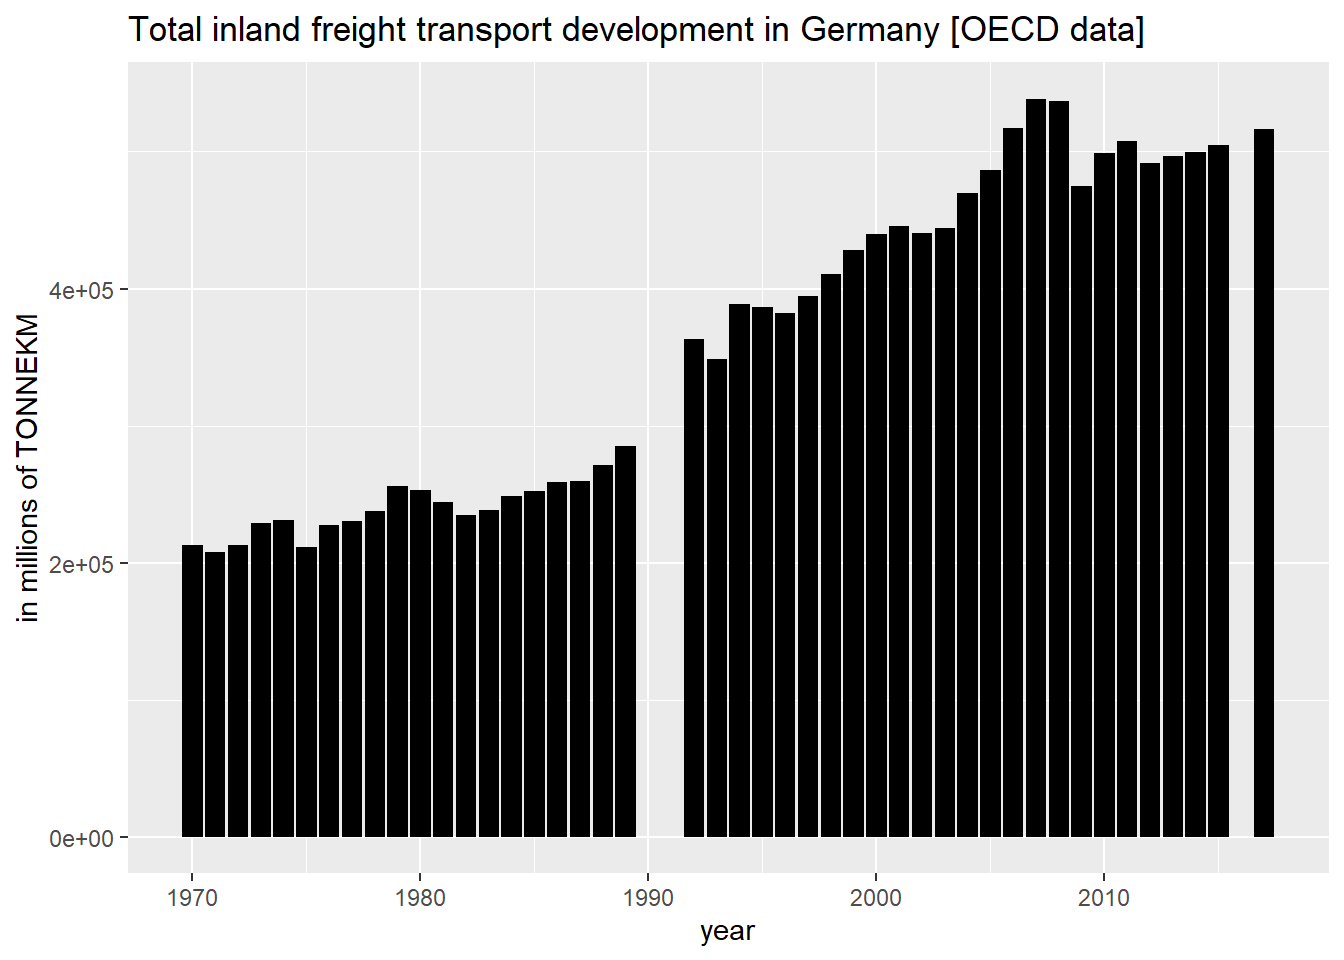 oecd freight transport data